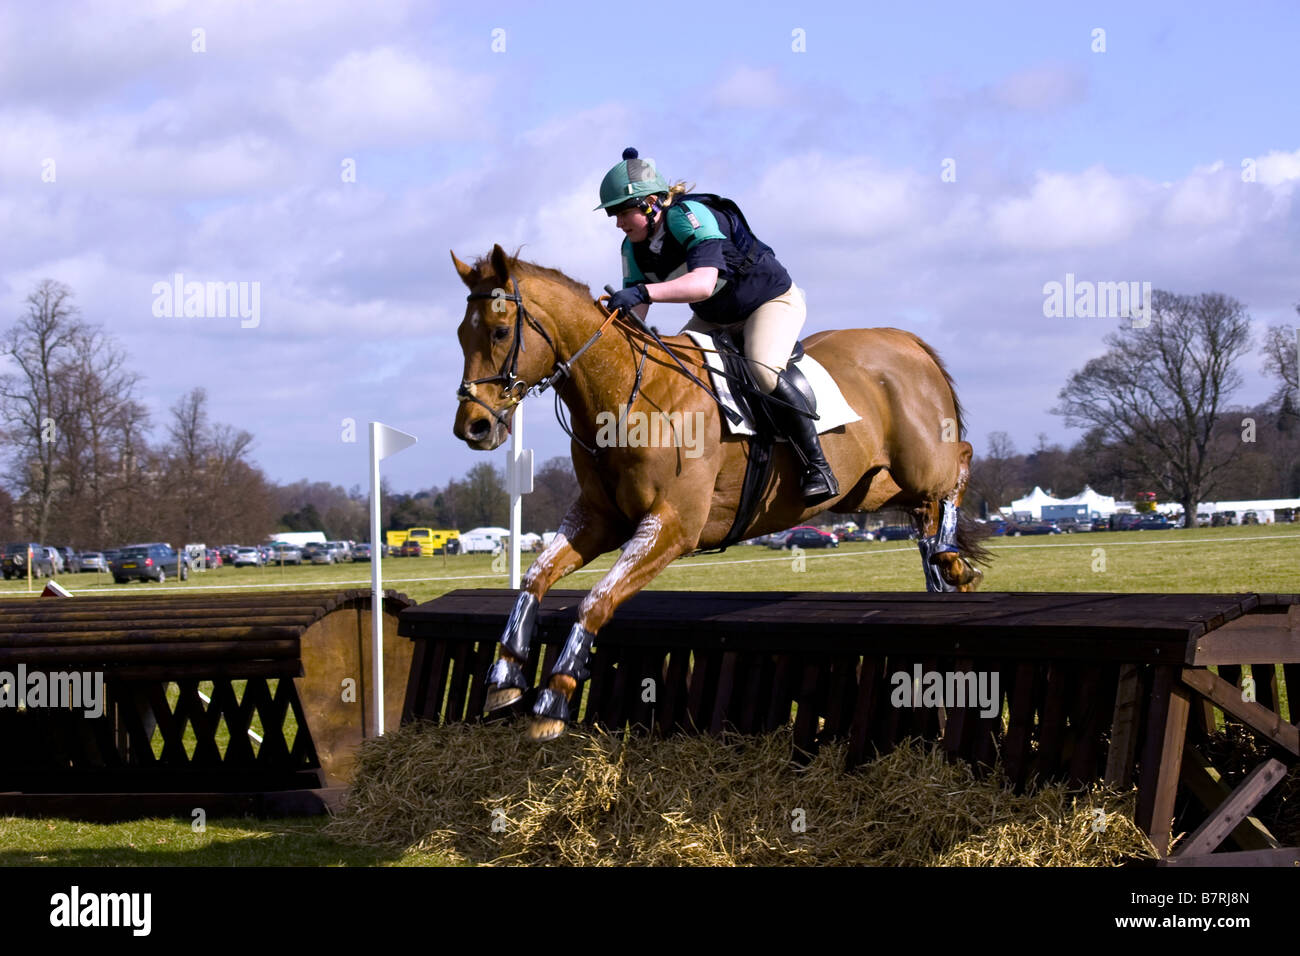 Sian Williams competing on 'Lammoski' at the Belton House Horse Trials day 2008 - Stock Image